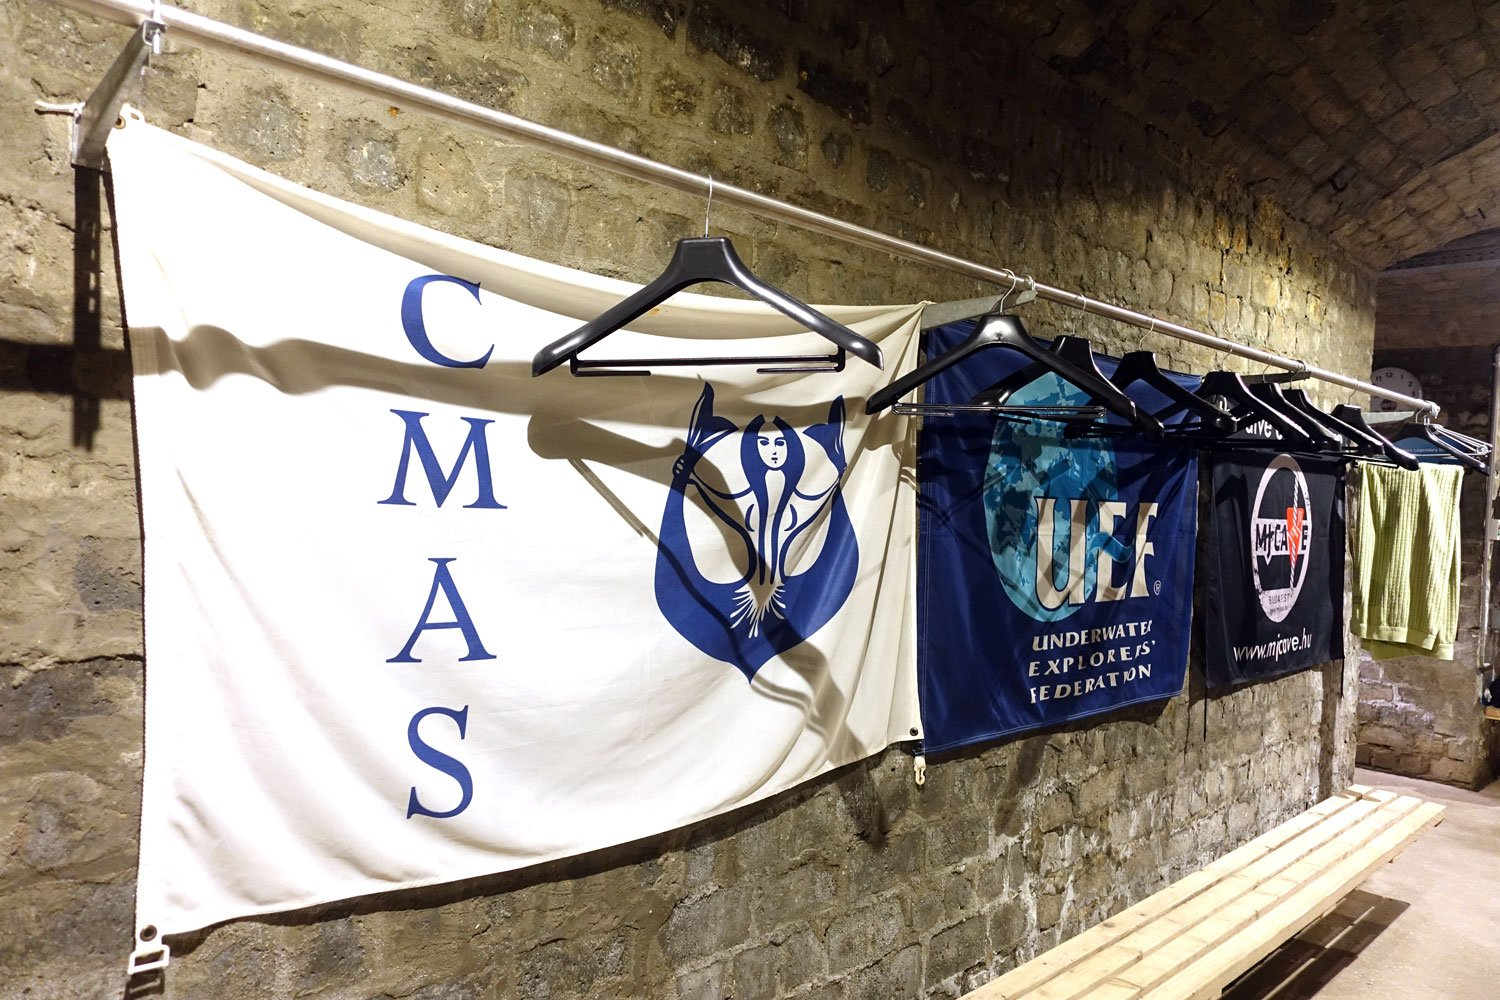 molnar janos budapest cave diving banners